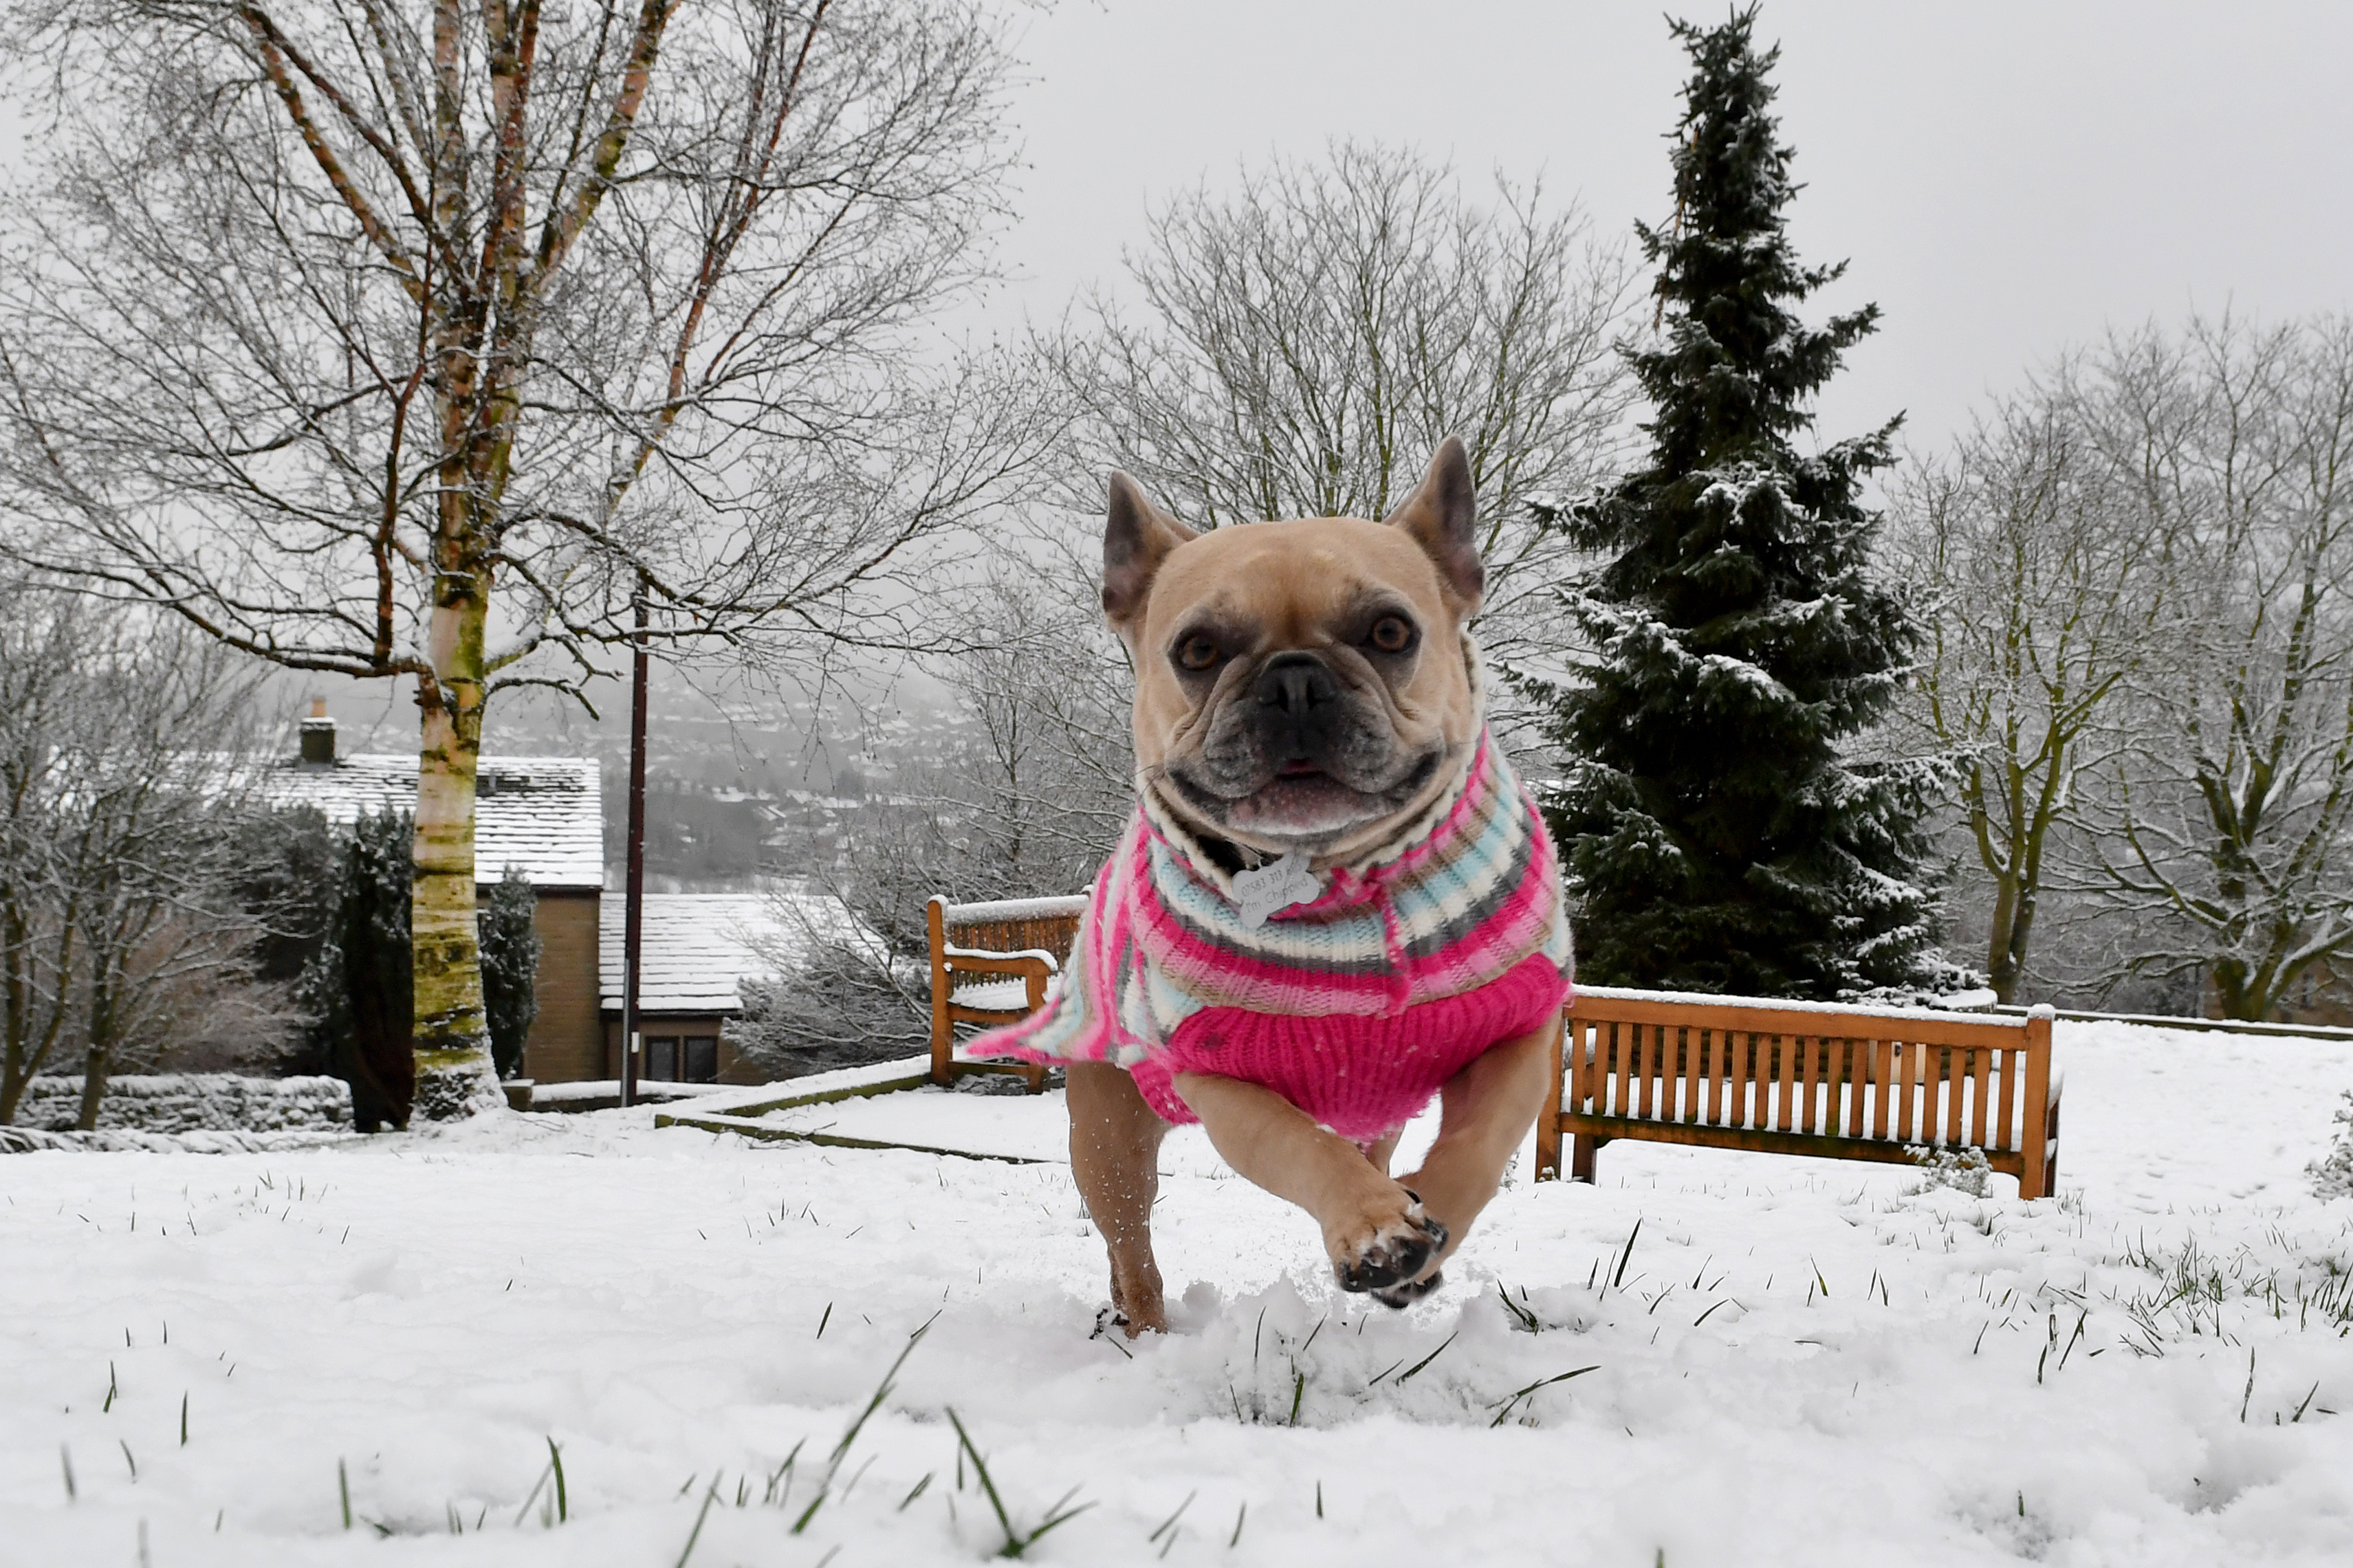 Frenchie the French Bulldog runs in the snow in the village of Tintwistle in the High Peak district in Derbyshire, United Kingdom.